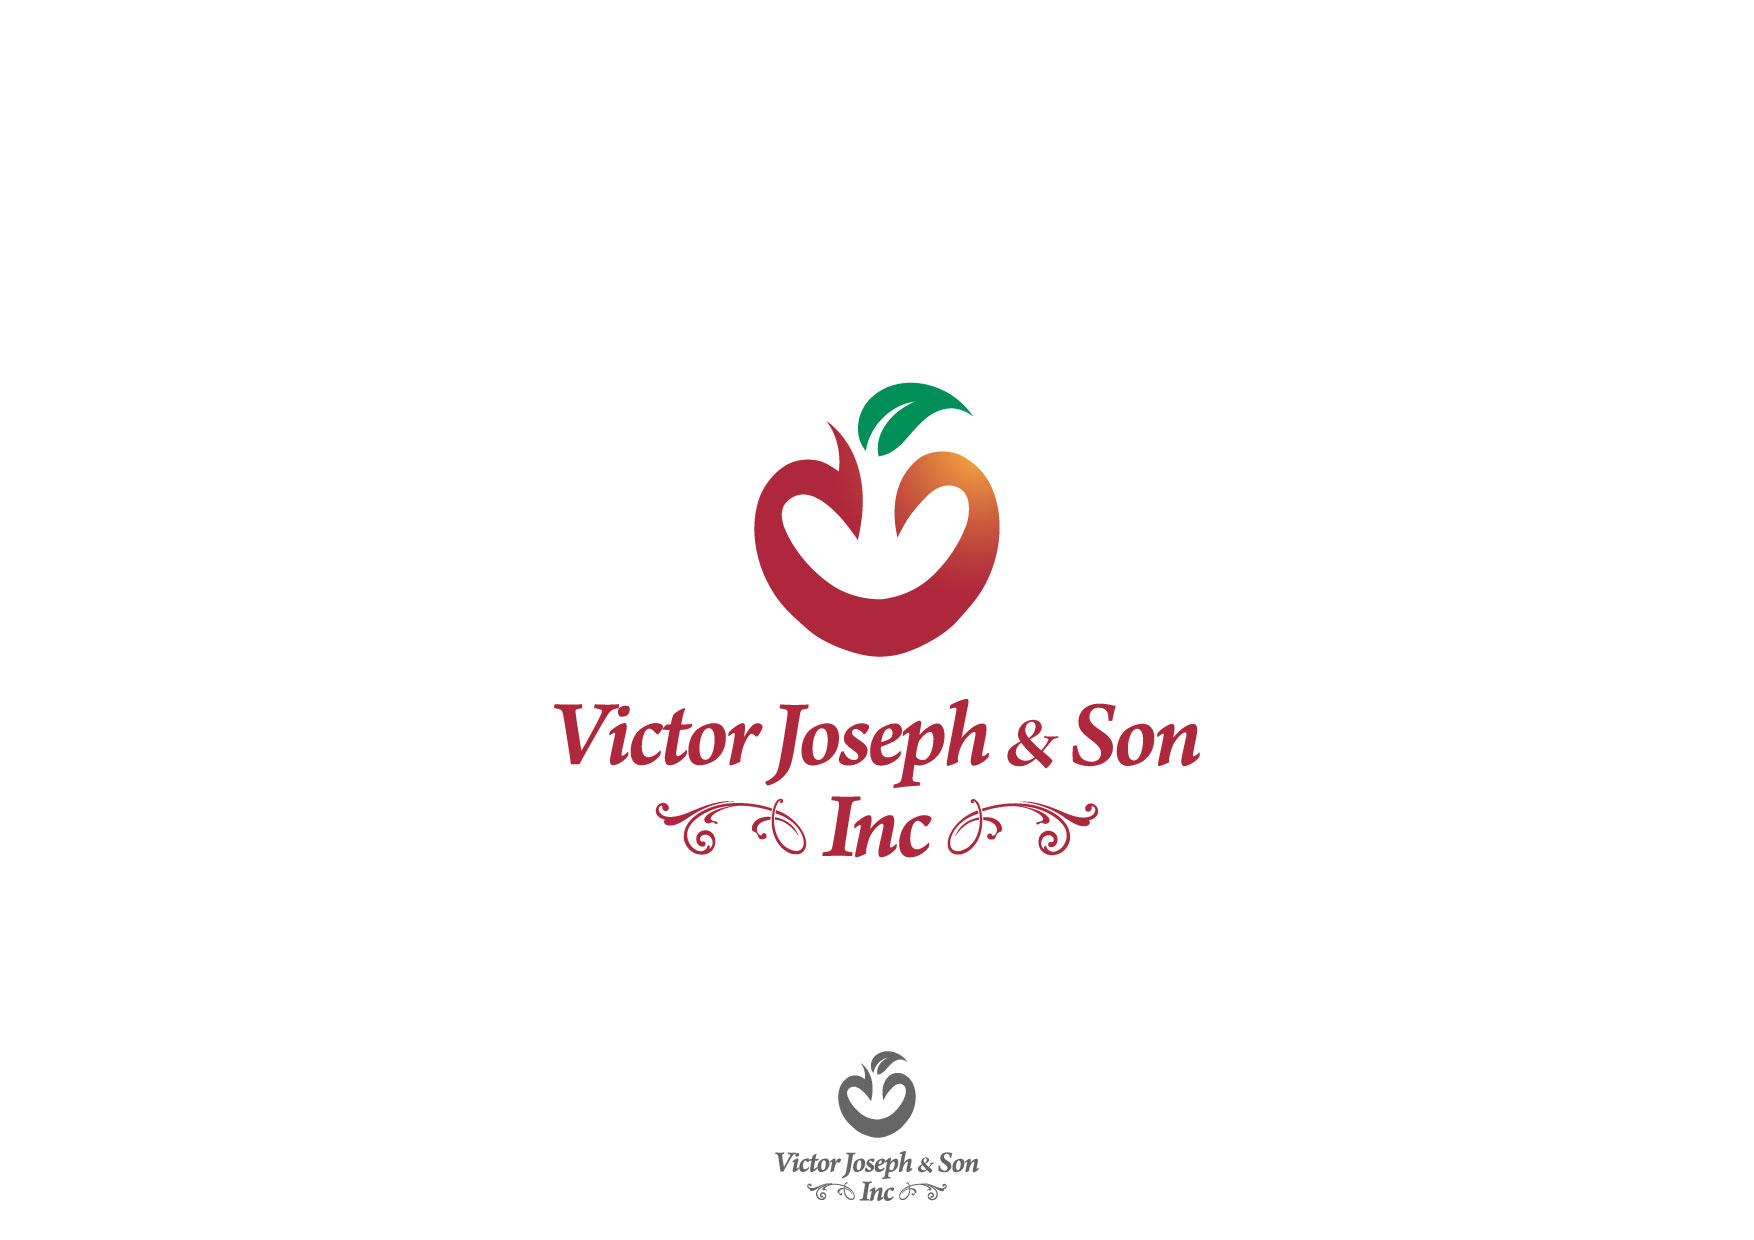 Logo Design by Nurgalih Destianto - Entry No. 167 in the Logo Design Contest Imaginative Logo Design for Victor Joseph & Son, Inc..